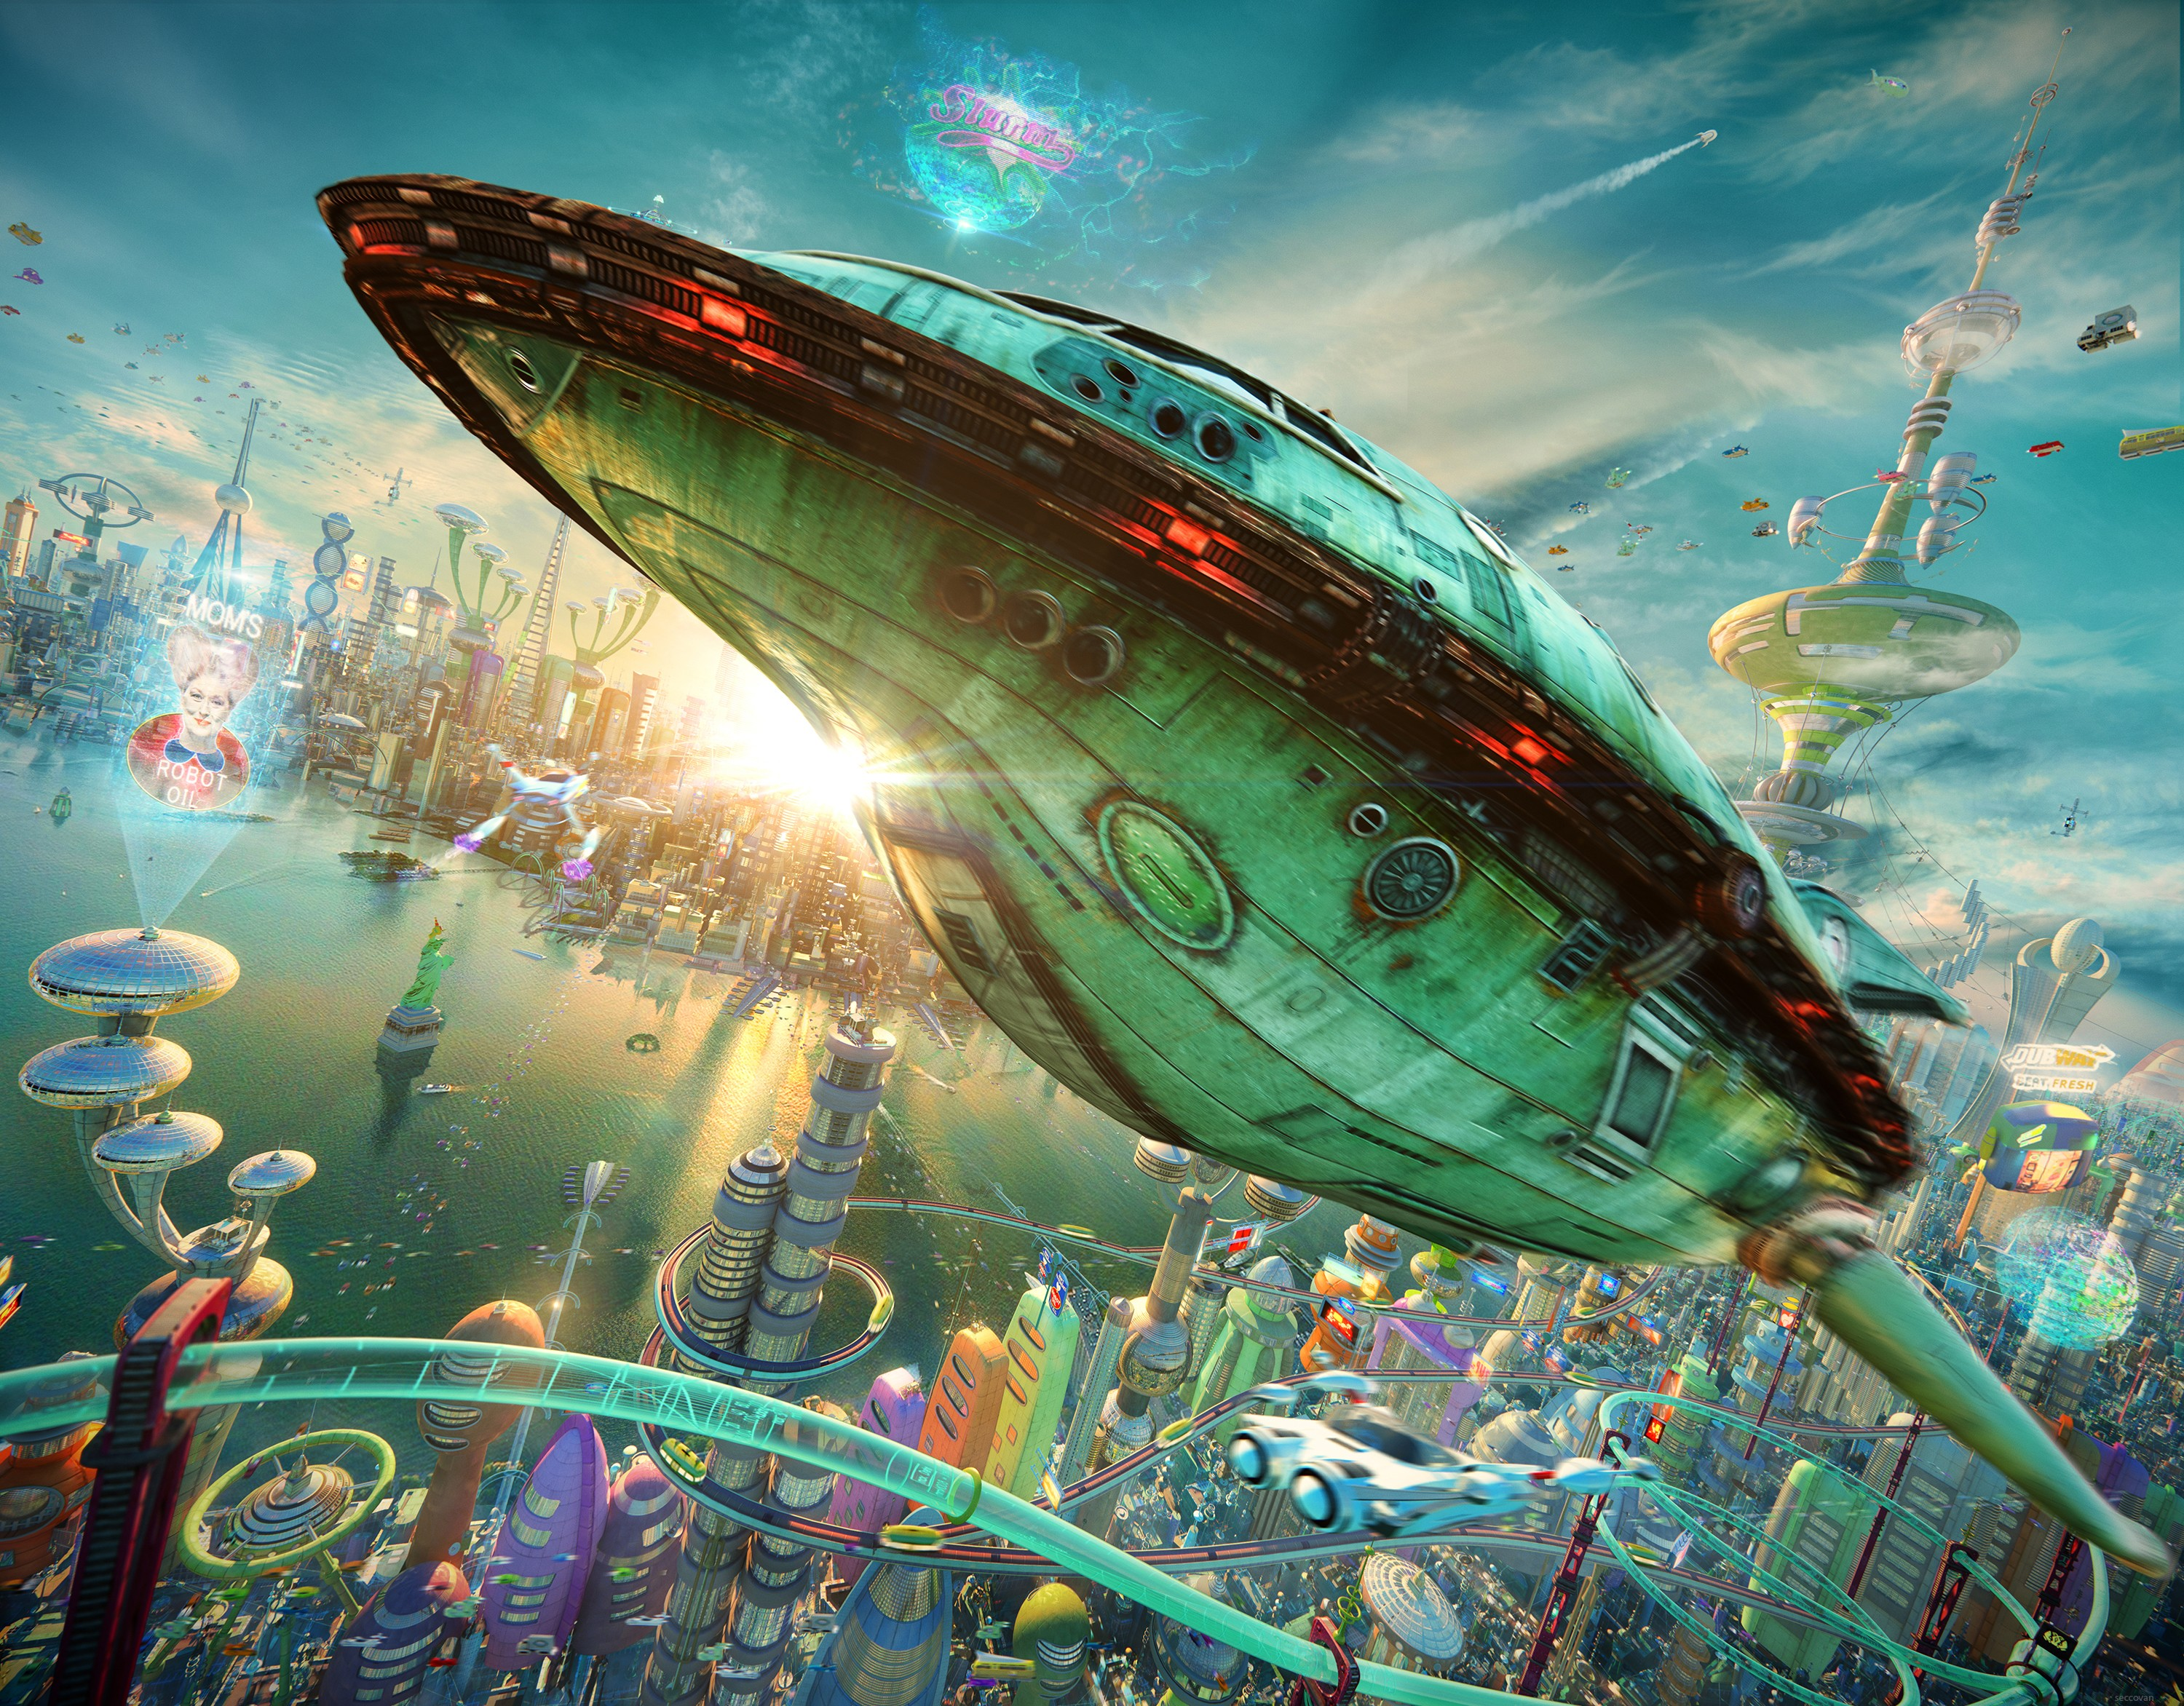 General 3000x2344 Futurama realistic 3D planet express spaceship futuristic city